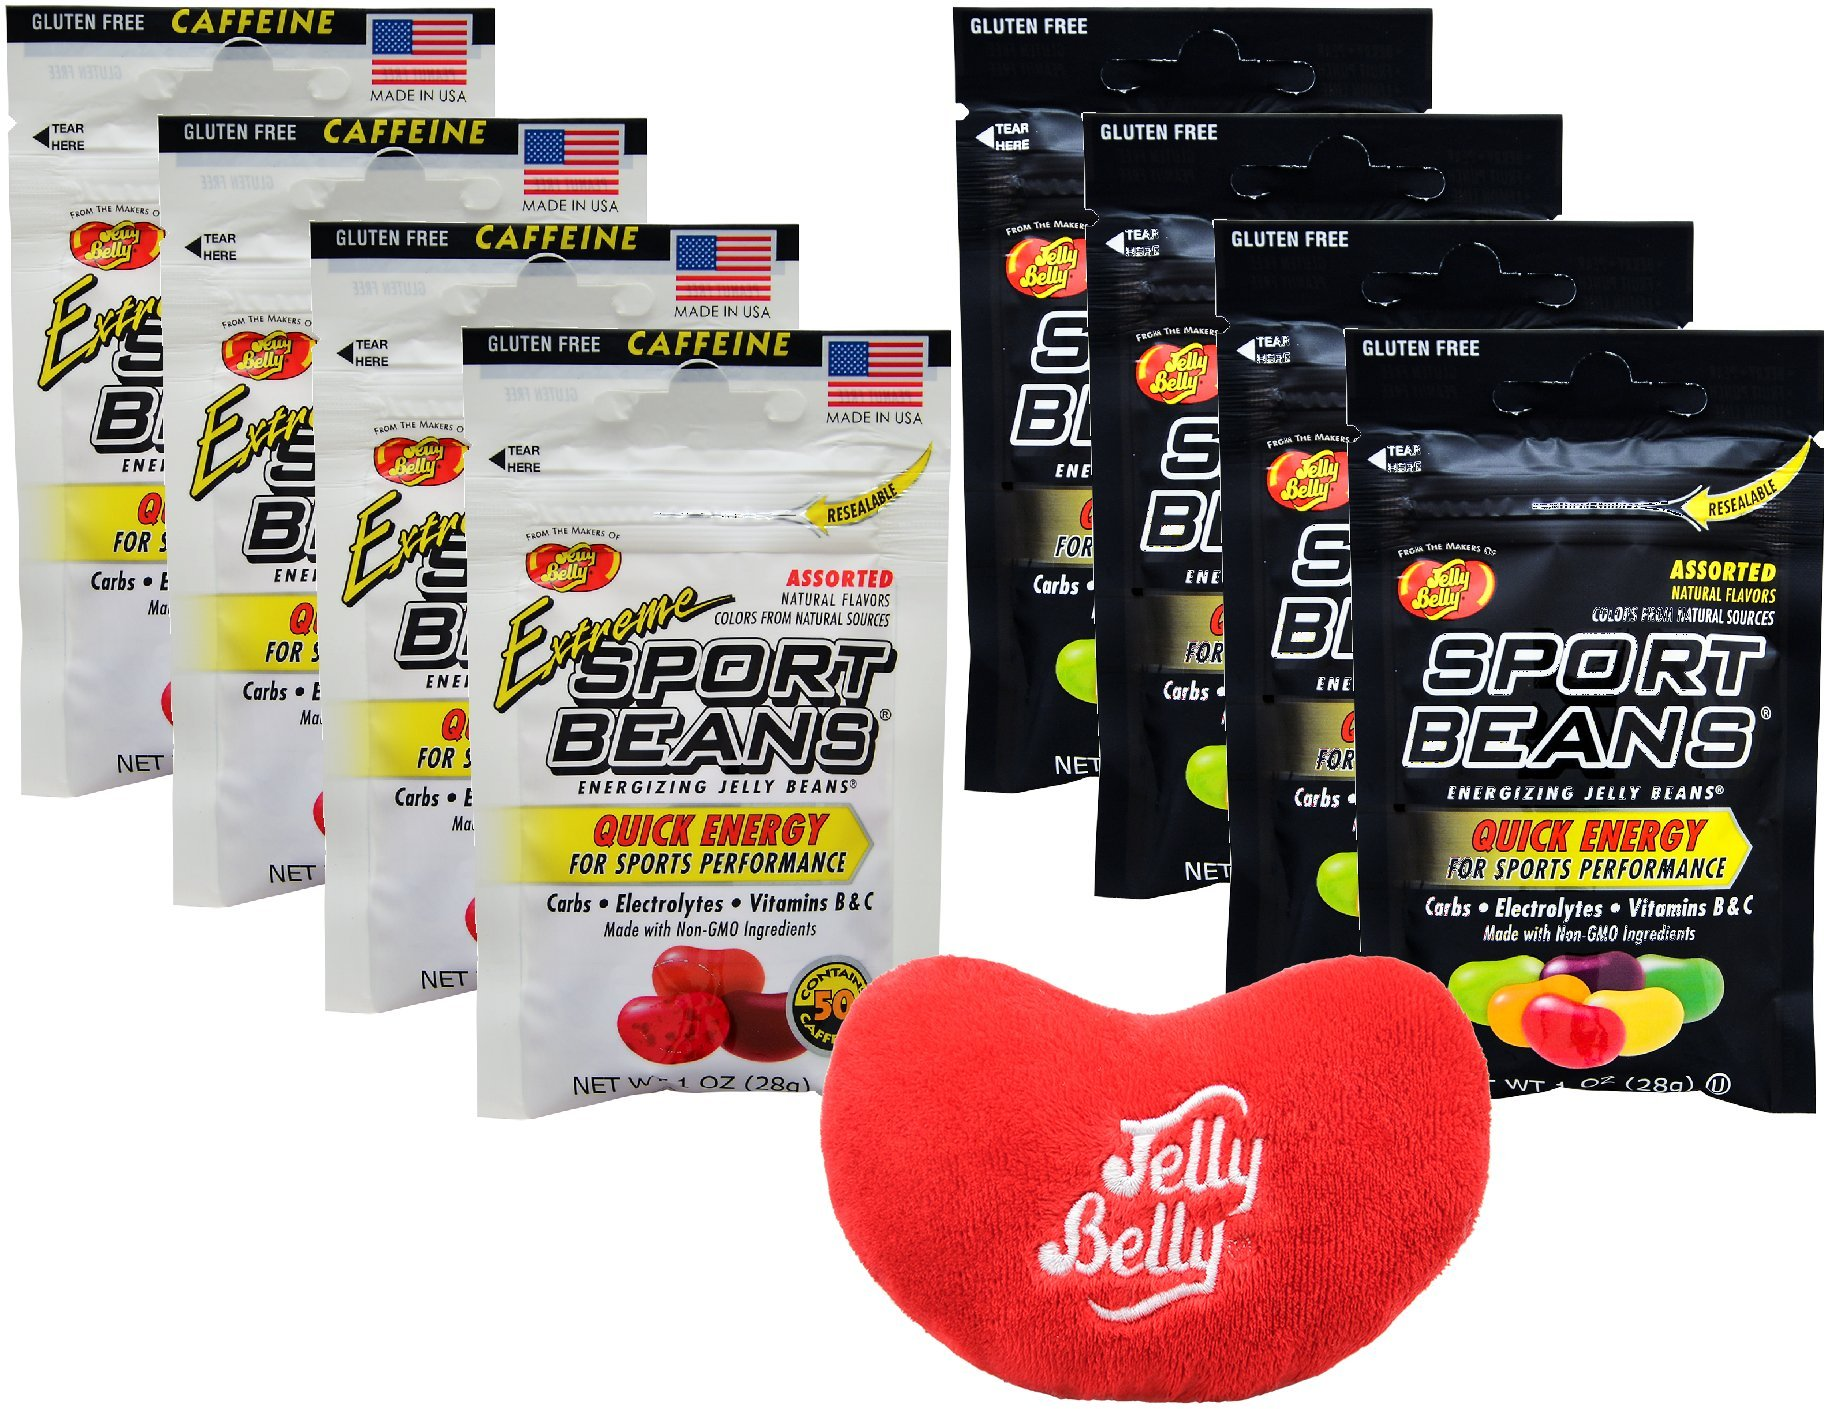 Jelly Belly Jelly Beans Jelly Belly Sports Beans Assorted Quick Energy from Caffeine and Electrolytes - 4 Extreme and 4 Original 1 Ounce Bags (Pack of 8) - with Jelly Belly Emoji Mini Plush Toy by By The Cup